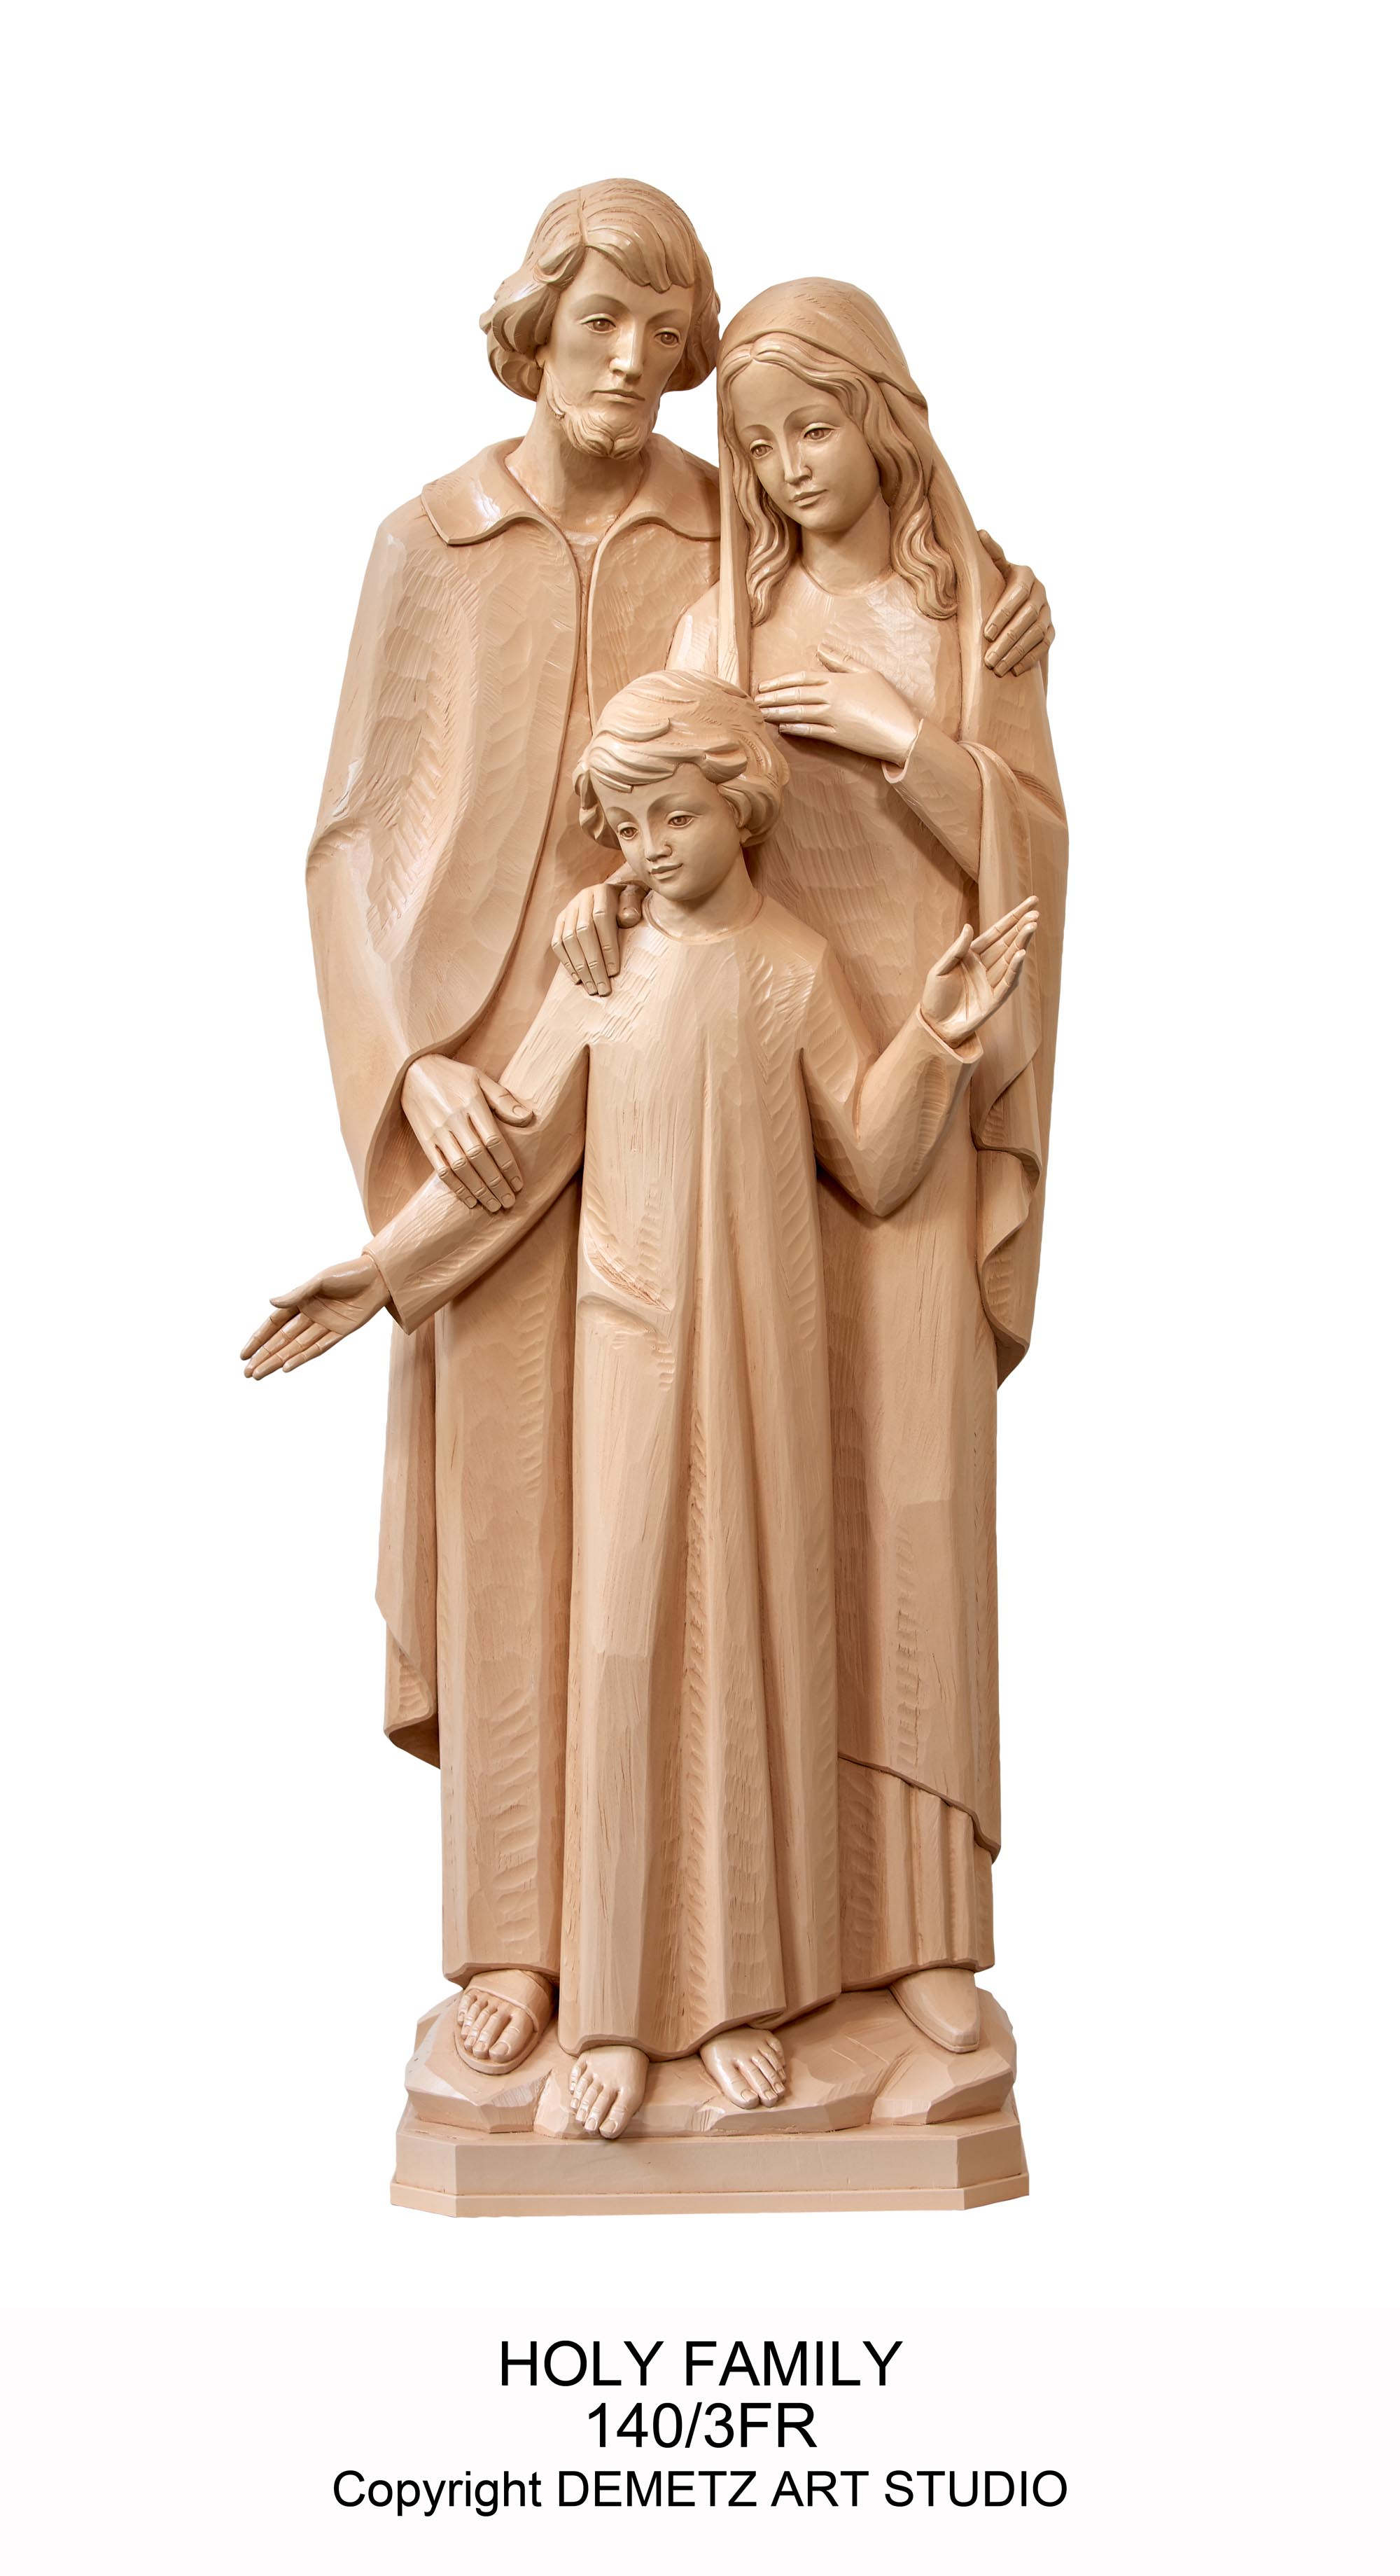 Holy Family Statue 140 3fr Mckay Church Goods